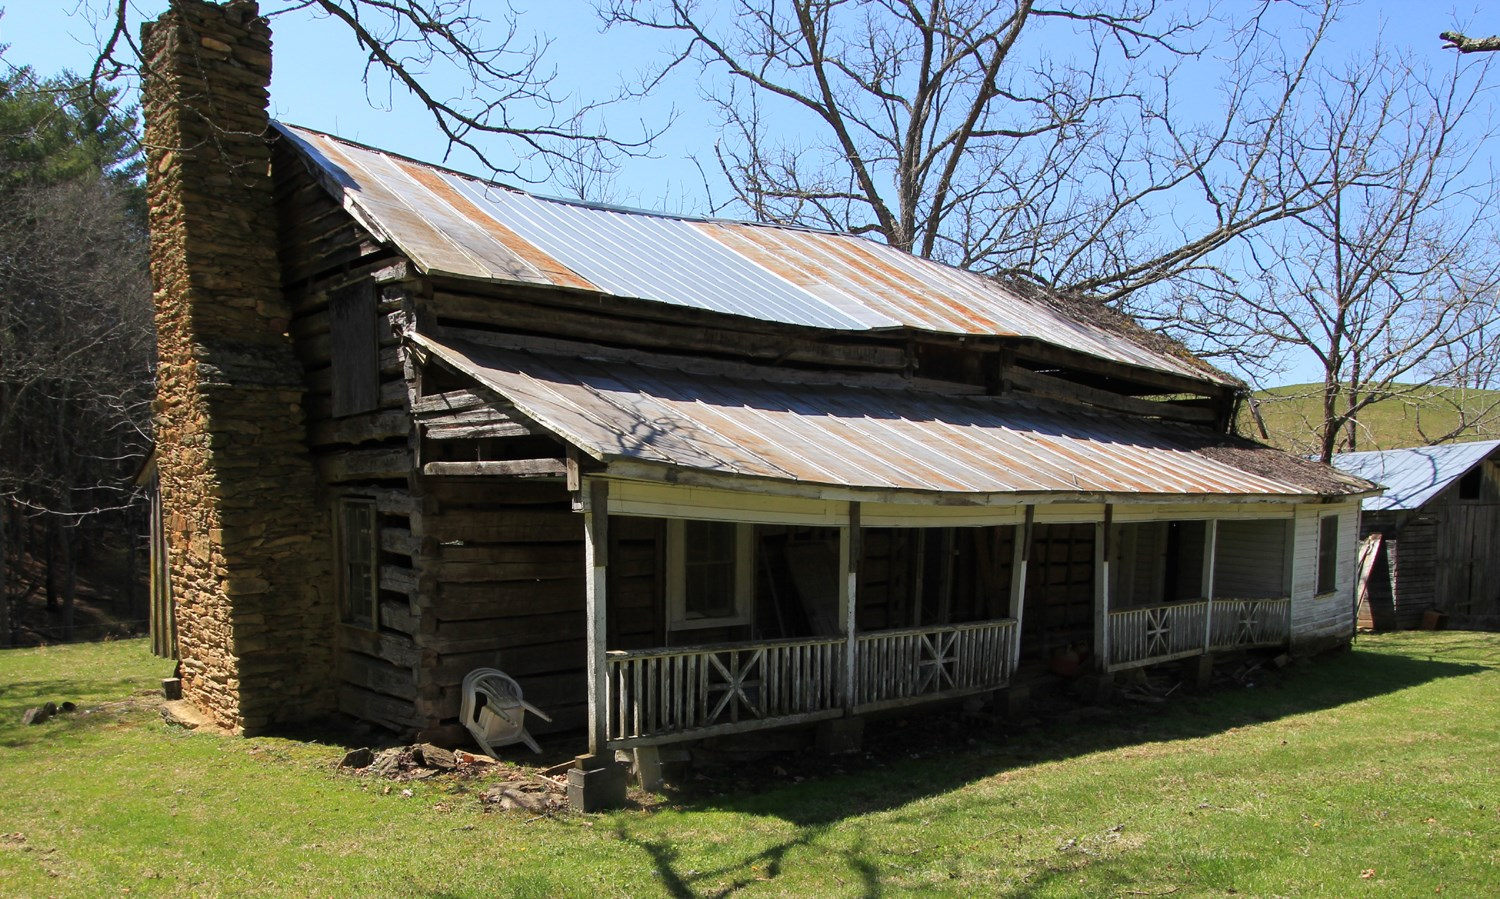 14.7 acres and Historic Log Structure located in Blue Ridge